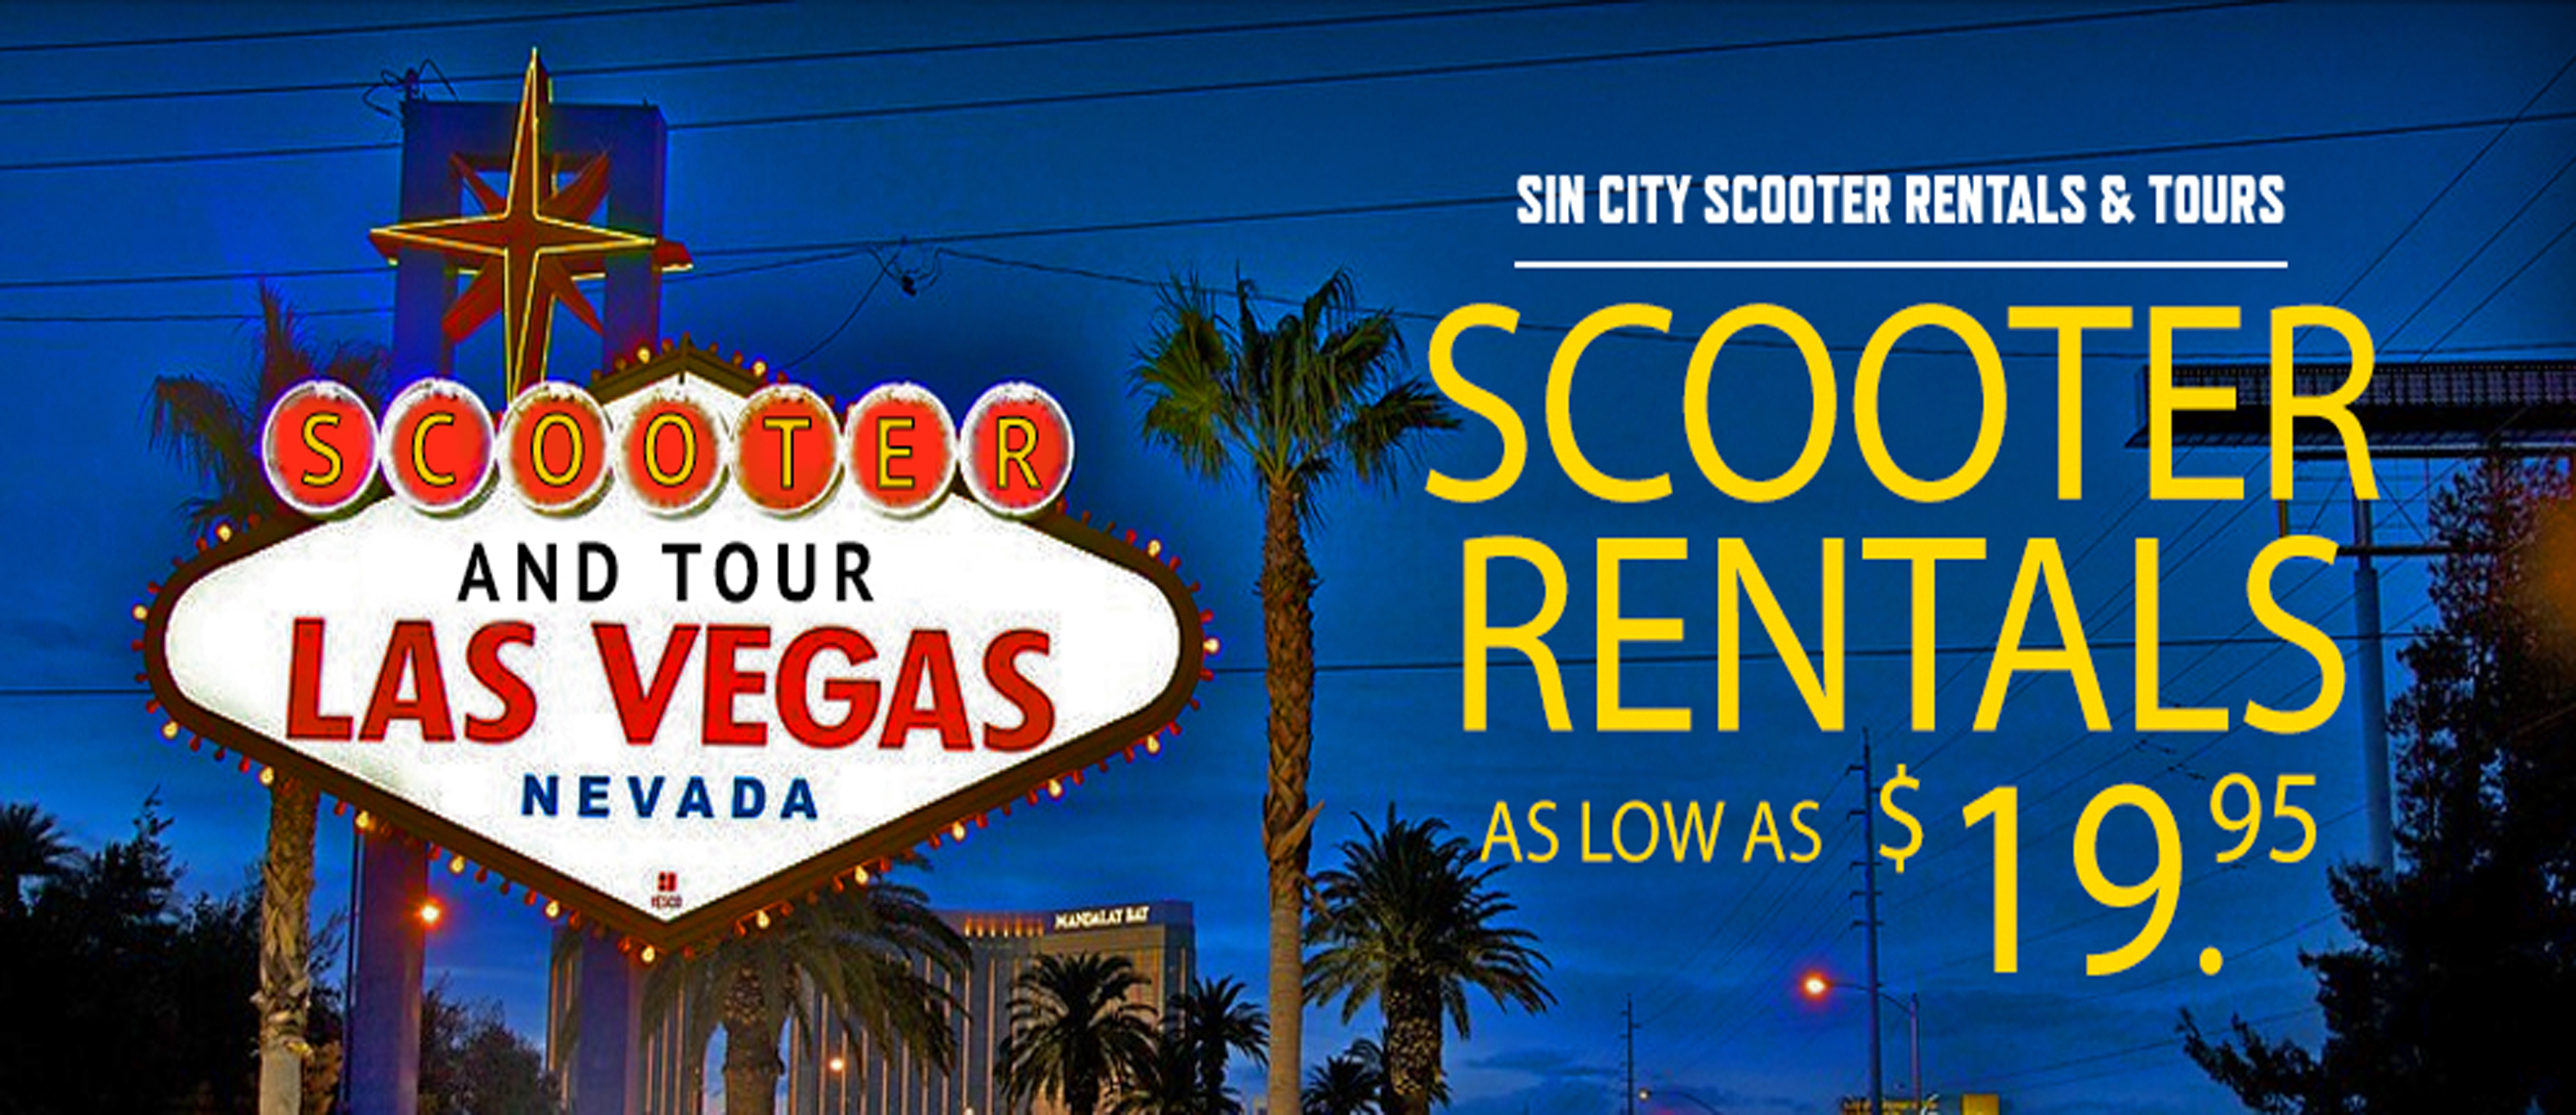 Sin City Scooter Rentals Tours